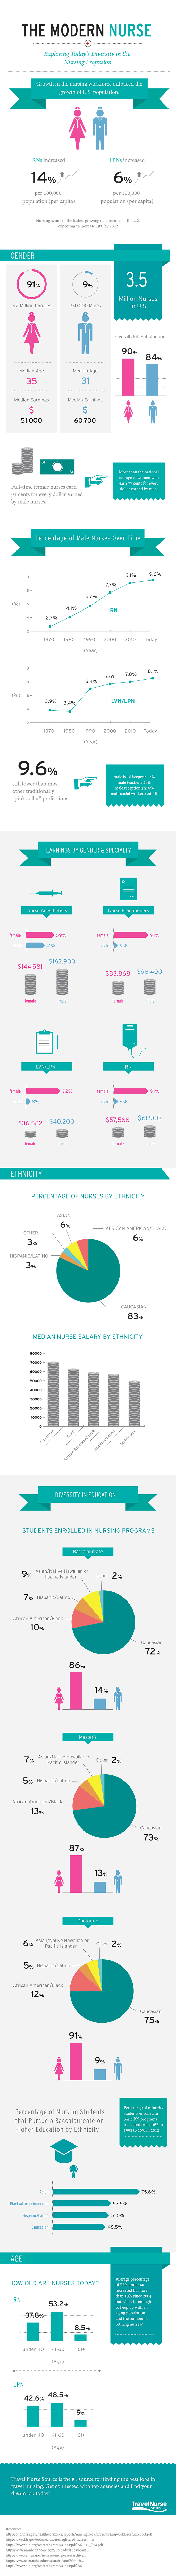 The Modern Nurse: Diversity in the Nursing Profession